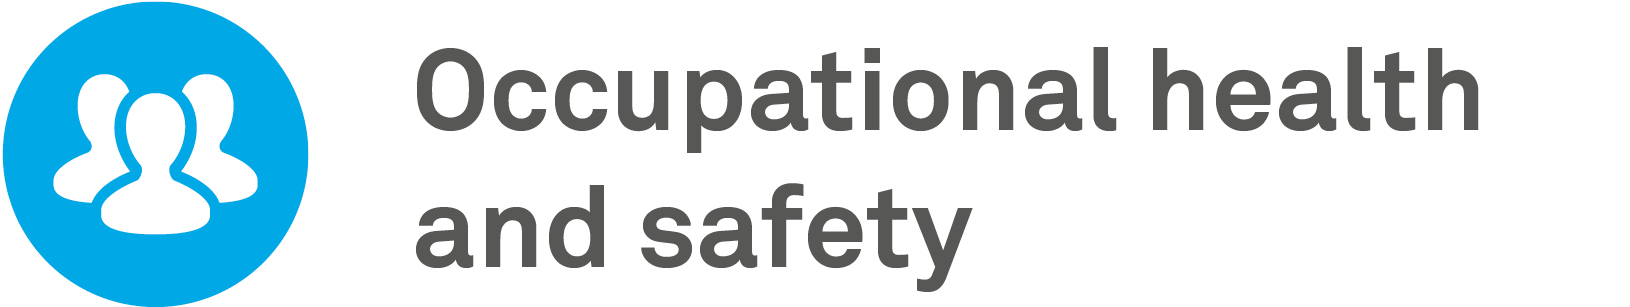 occupational health & safety gri icon